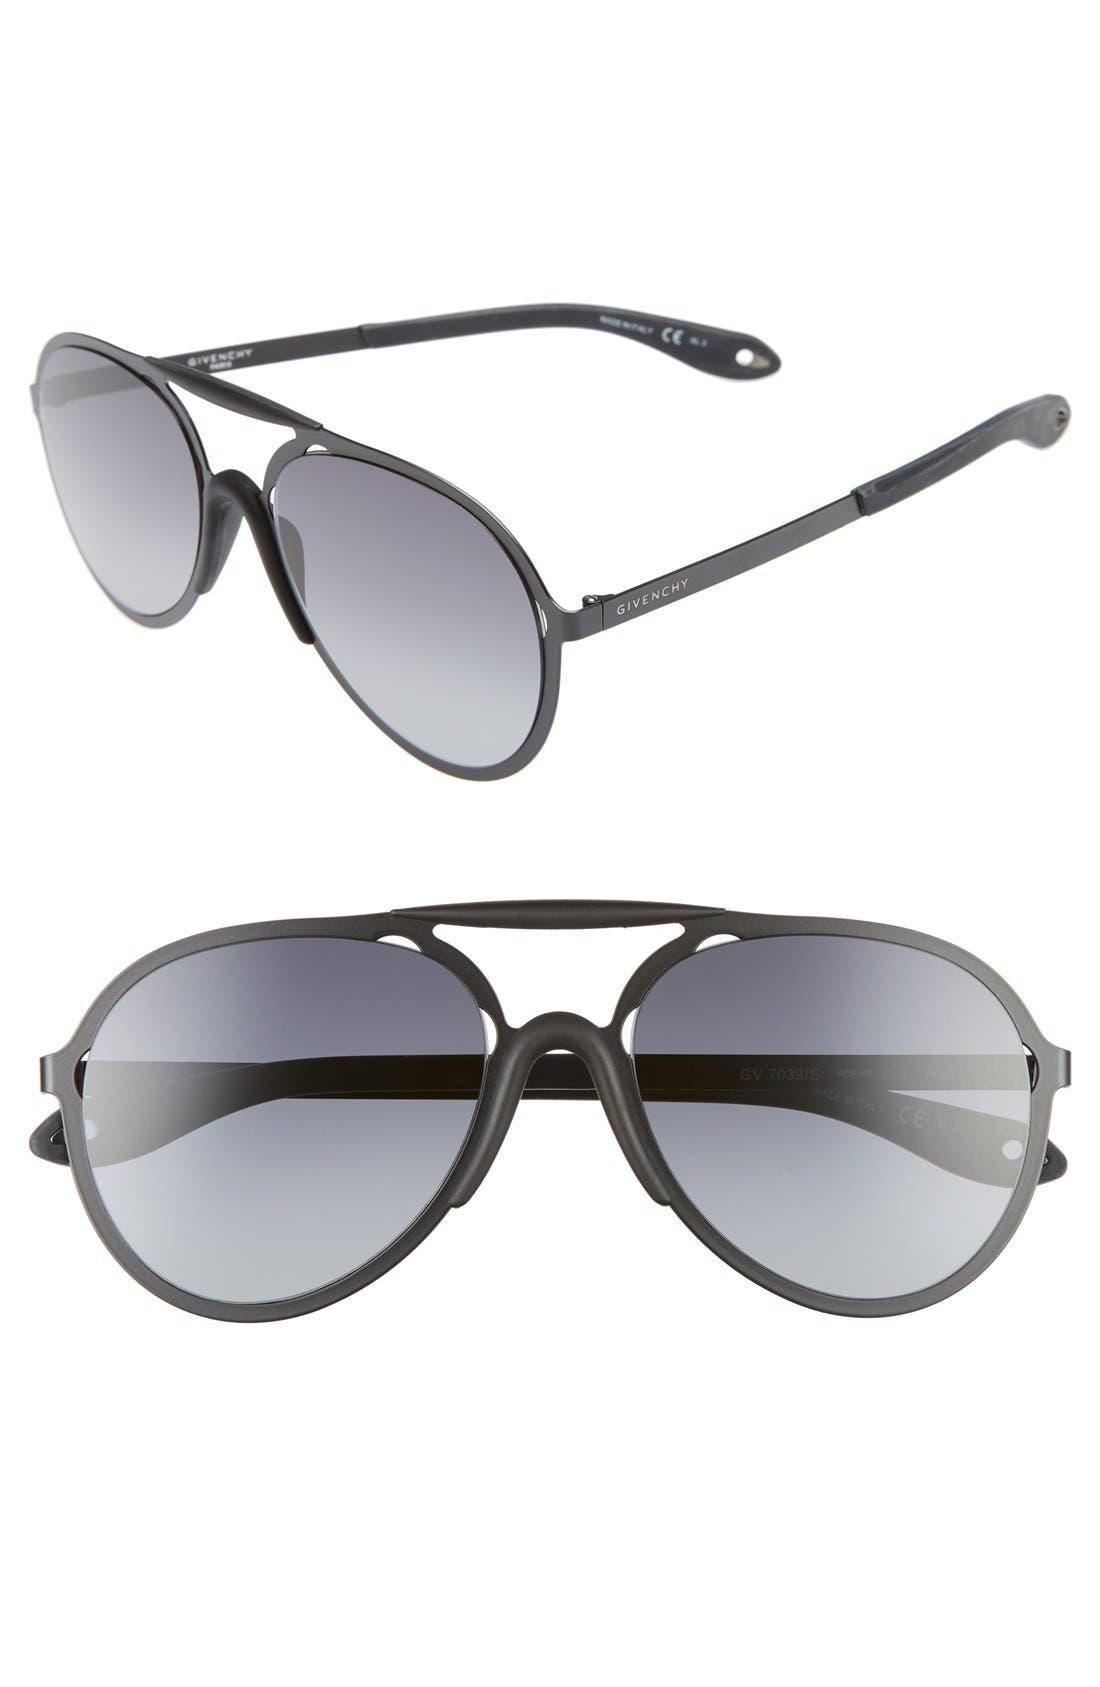 Main Image - Givenchy 57mm Sunglasses